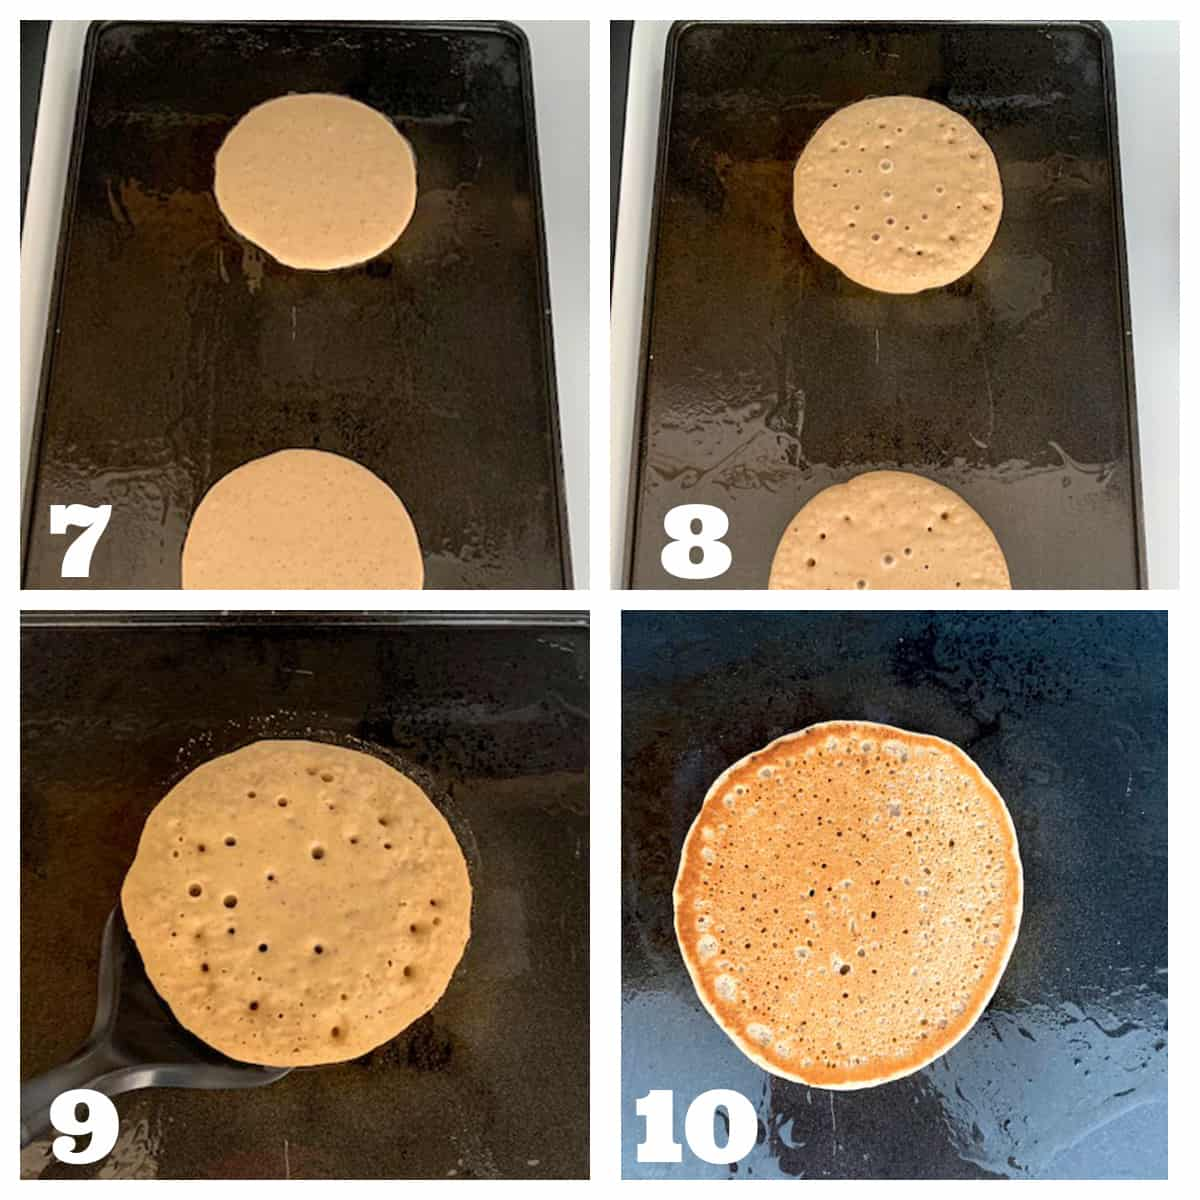 4 photo collage of cooking pancake batter on a griddle and flipping the pancakes.